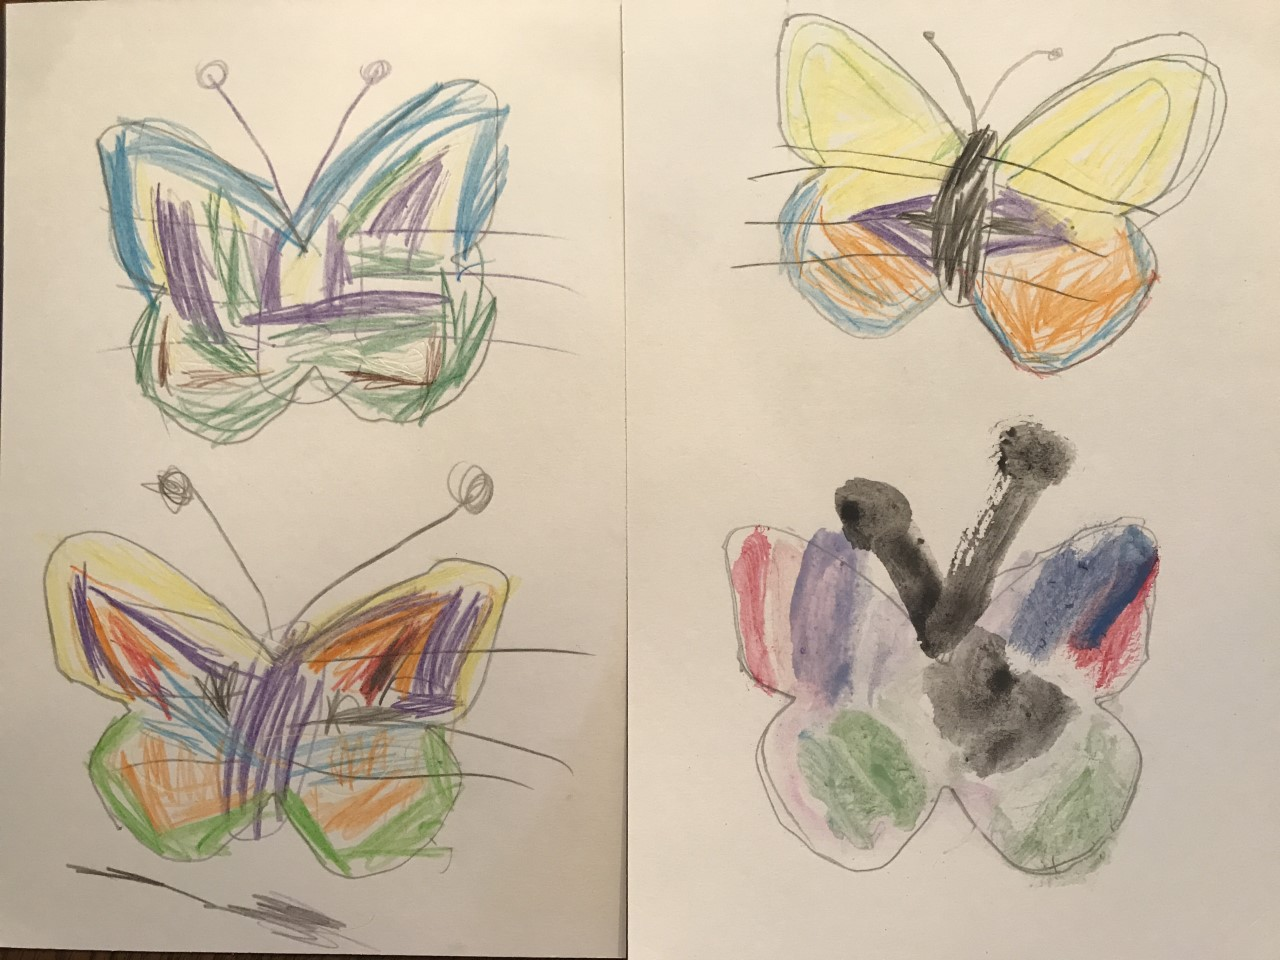 Eli was especially inspired by the butterflies!